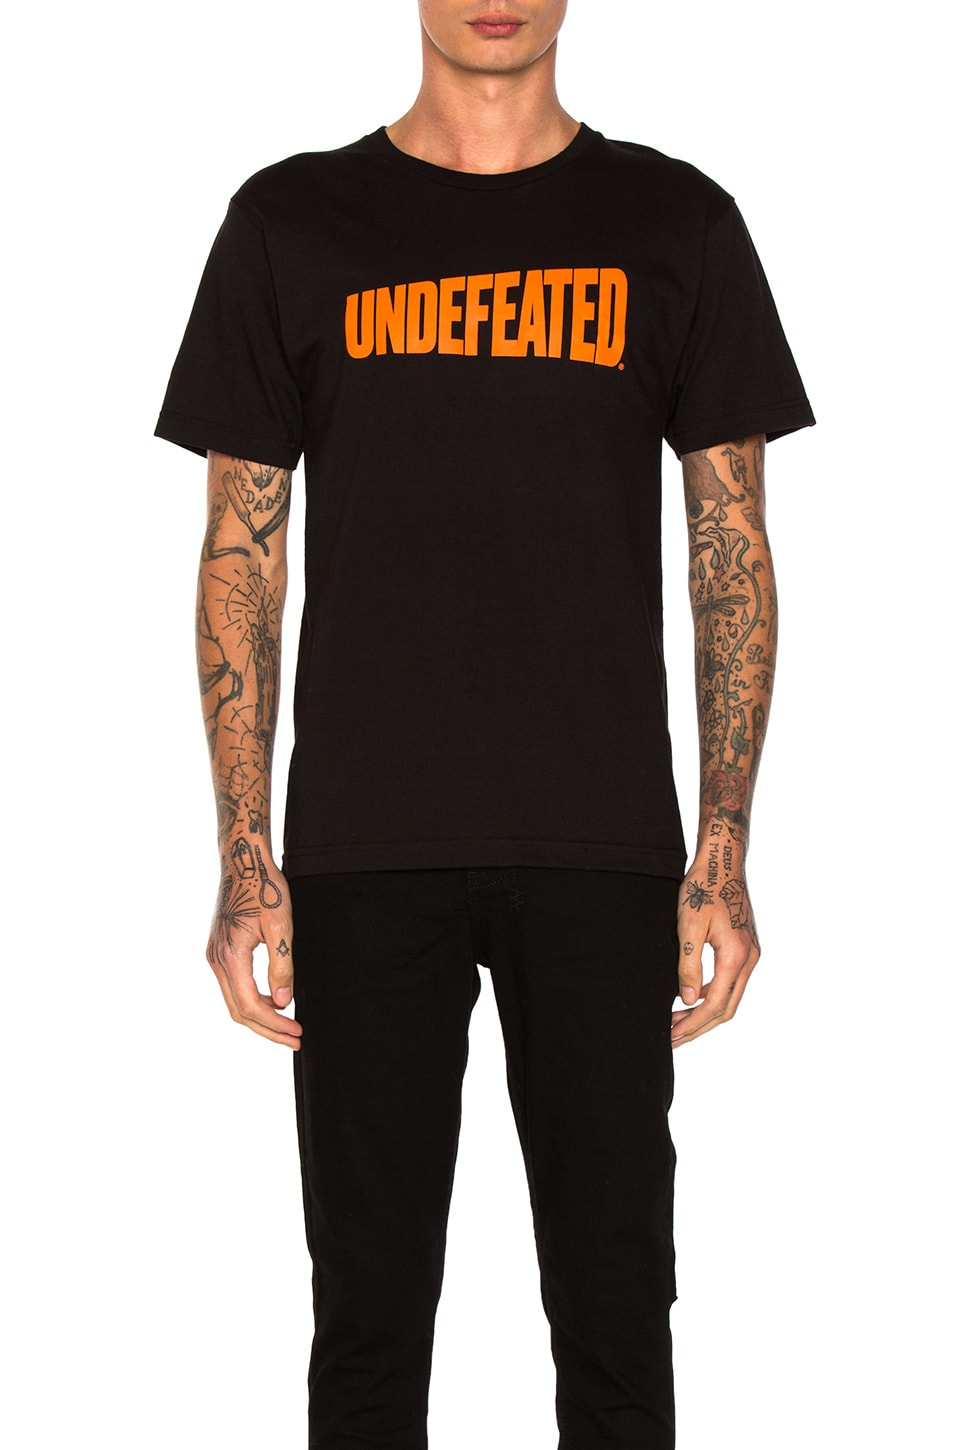 Whole Wheat Tee by Undefeated